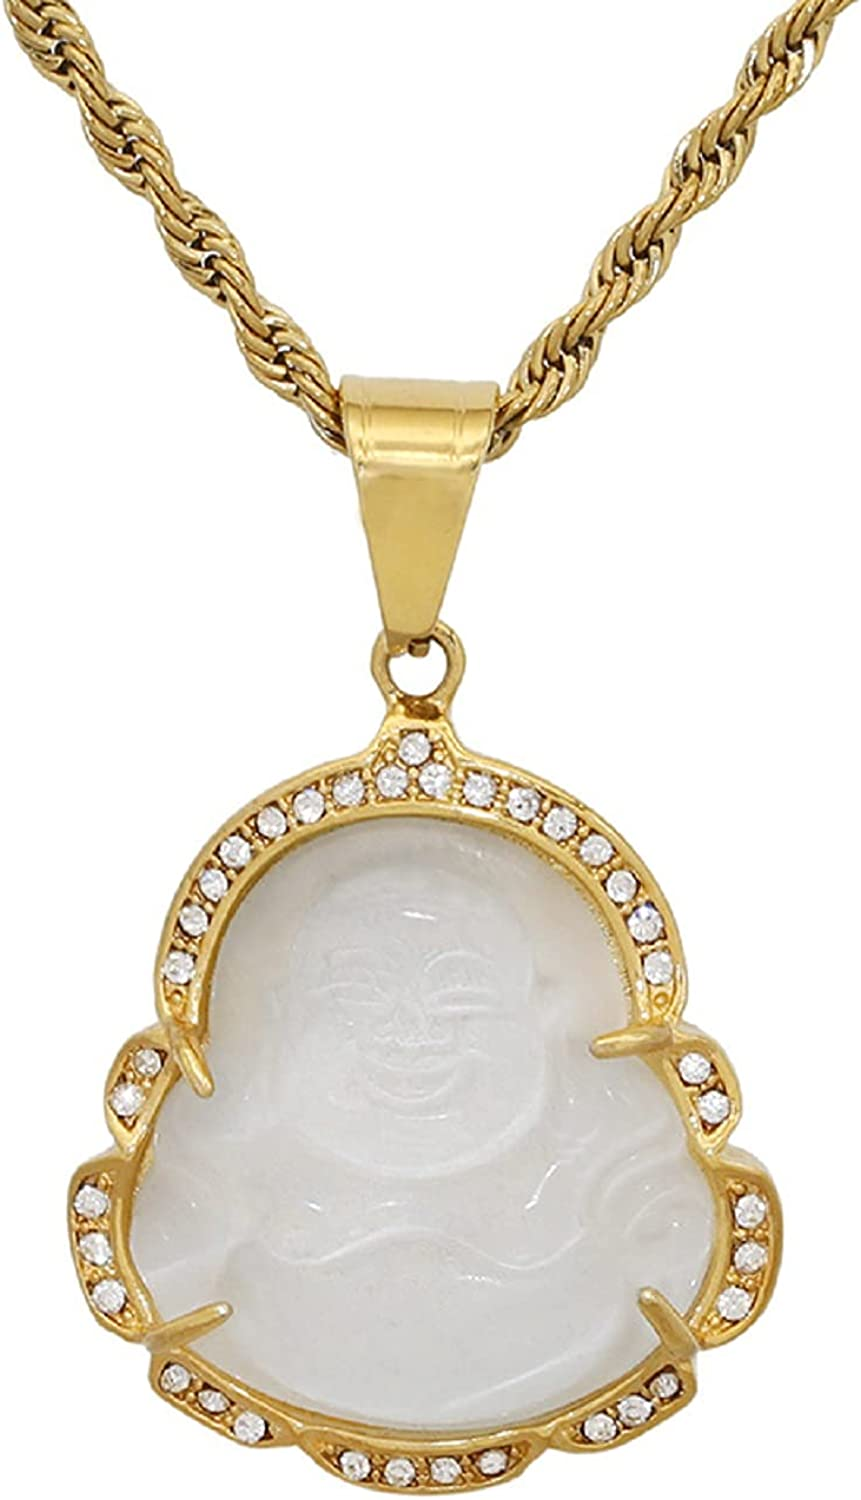 COLORFUL BLING 18k Gold Plated Laughing Buddha Pendant Necklace Green Jade Cubic Zirconia Gemstone Lucky Amulet Jewelry for Women Men